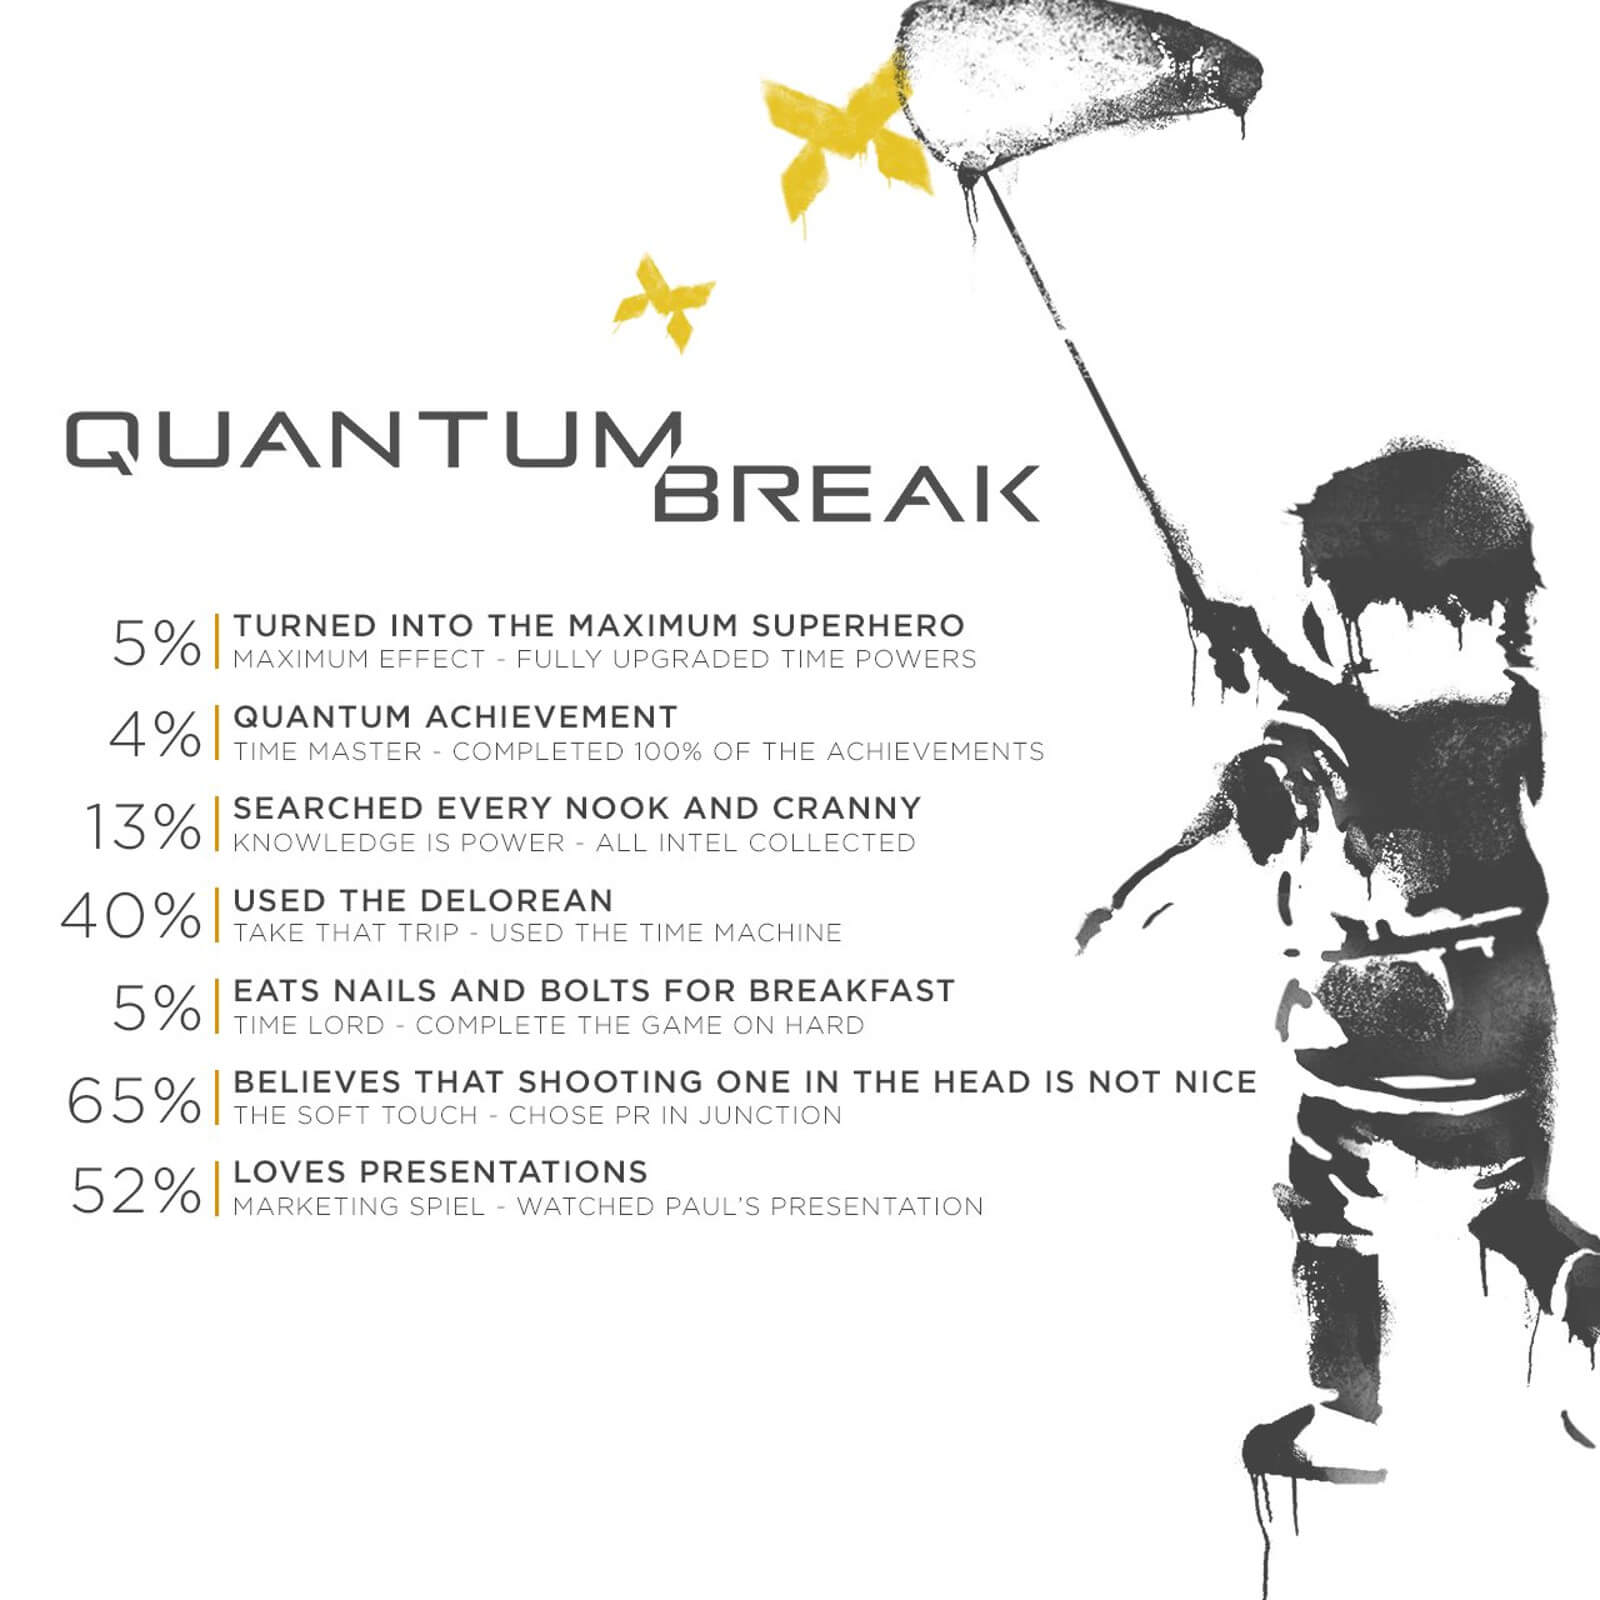 Conquistas do Quantum Break